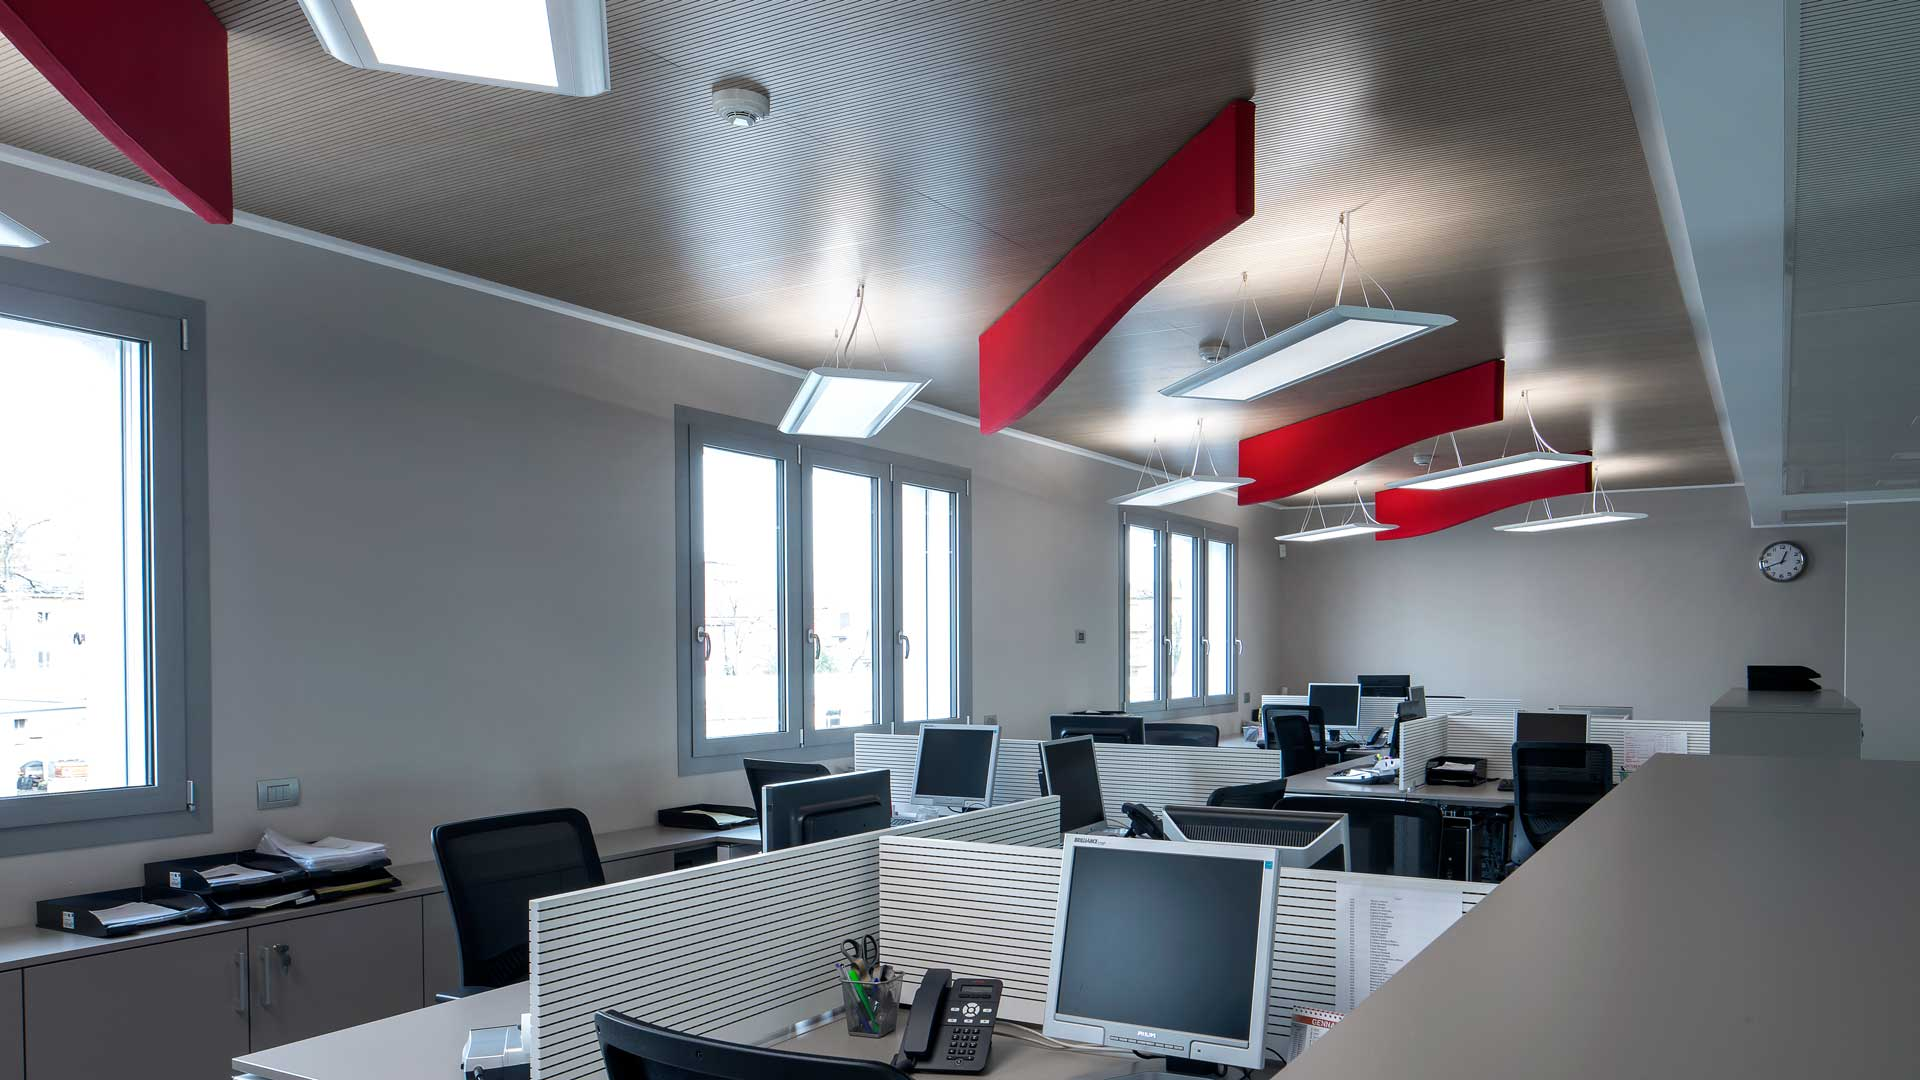 Baffles-a-soffitto-in-feltro-Level-Office-Landscape